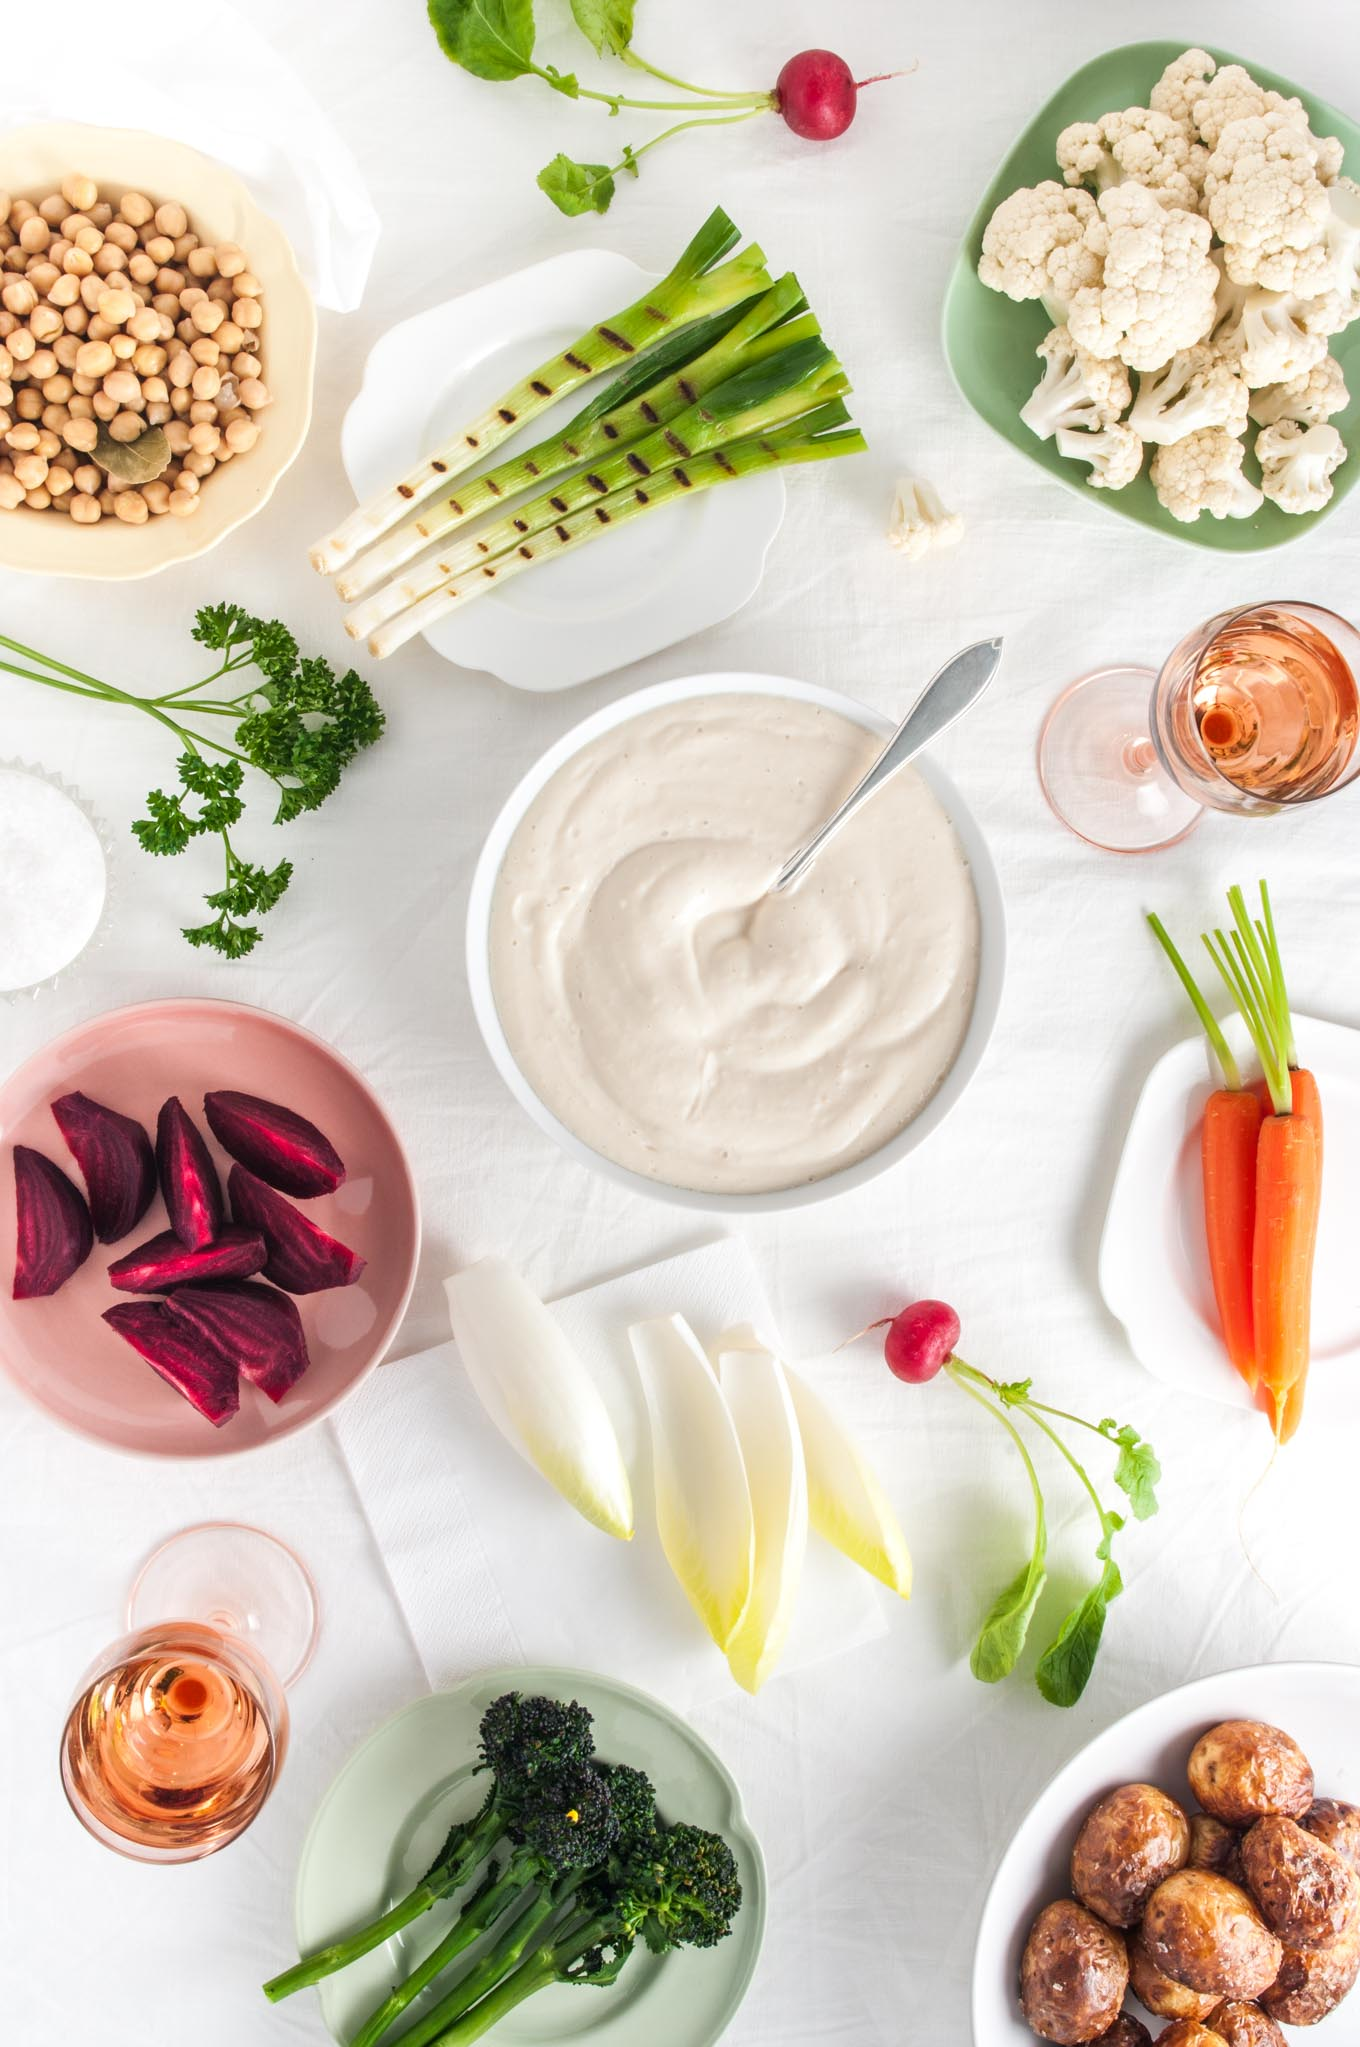 Silken Tofu Aioli with Winter Vegetables – A feast of seasonal vegetables, typical of Provence in southern France, here served with an aioli based on soft silken tofu for a nutritious, vegan alternative. By @deliciouscratch | deliciousfromscratch.com